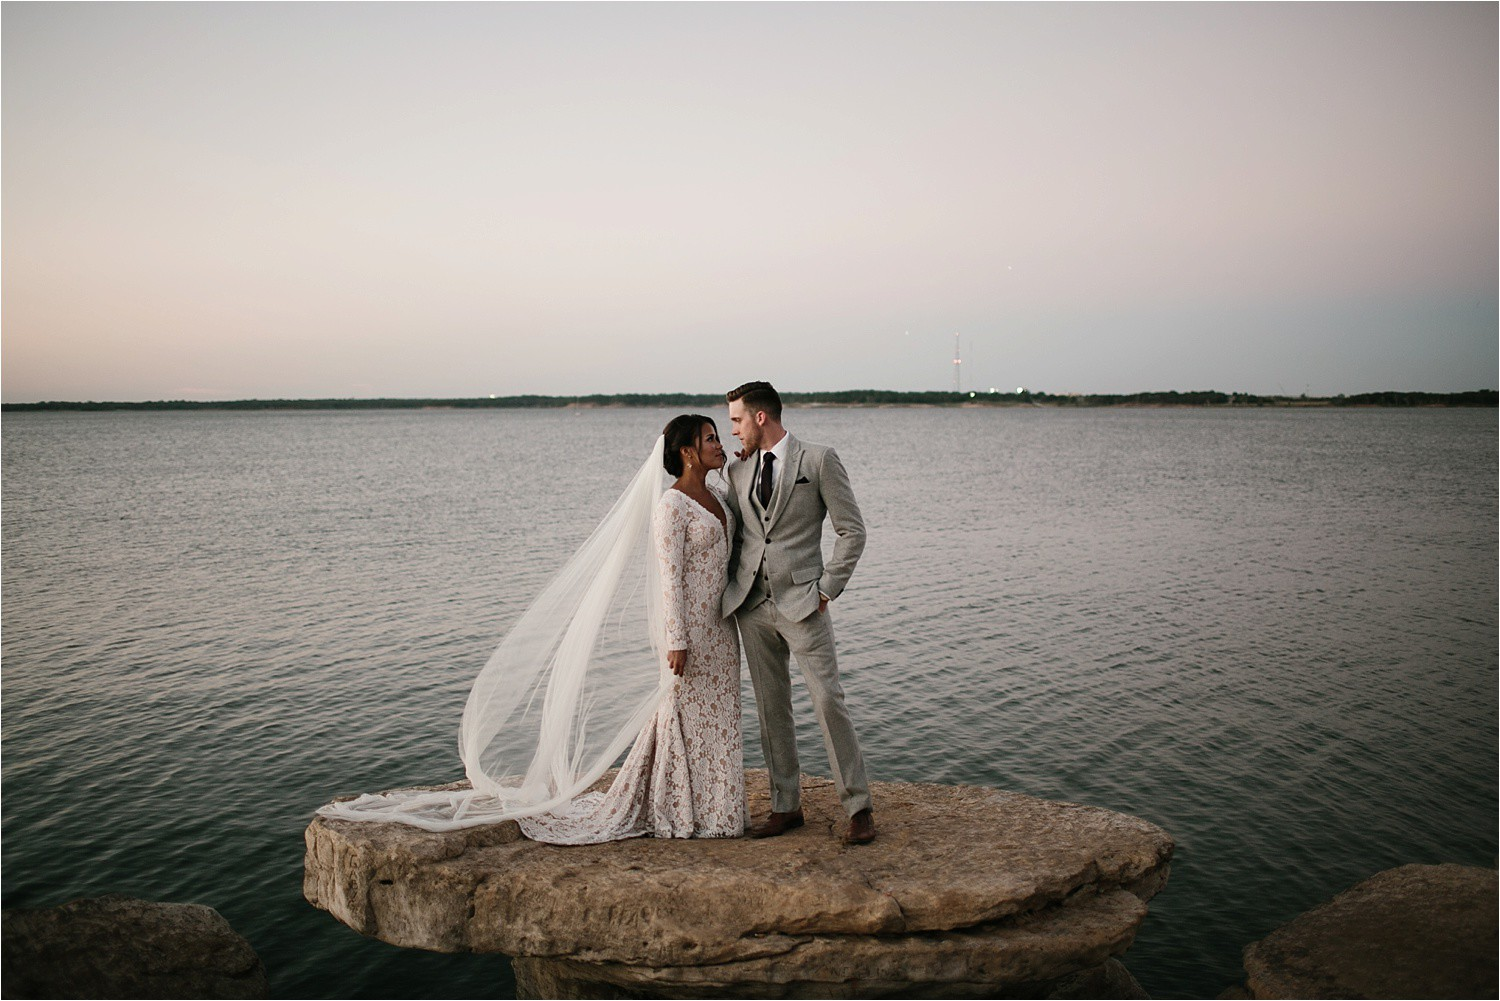 mallory-tyler-__-an-intimate-after-session-at-grapevine-lake-by-north-texas-wedding-photographer-rachel-meagan-photography-_-51